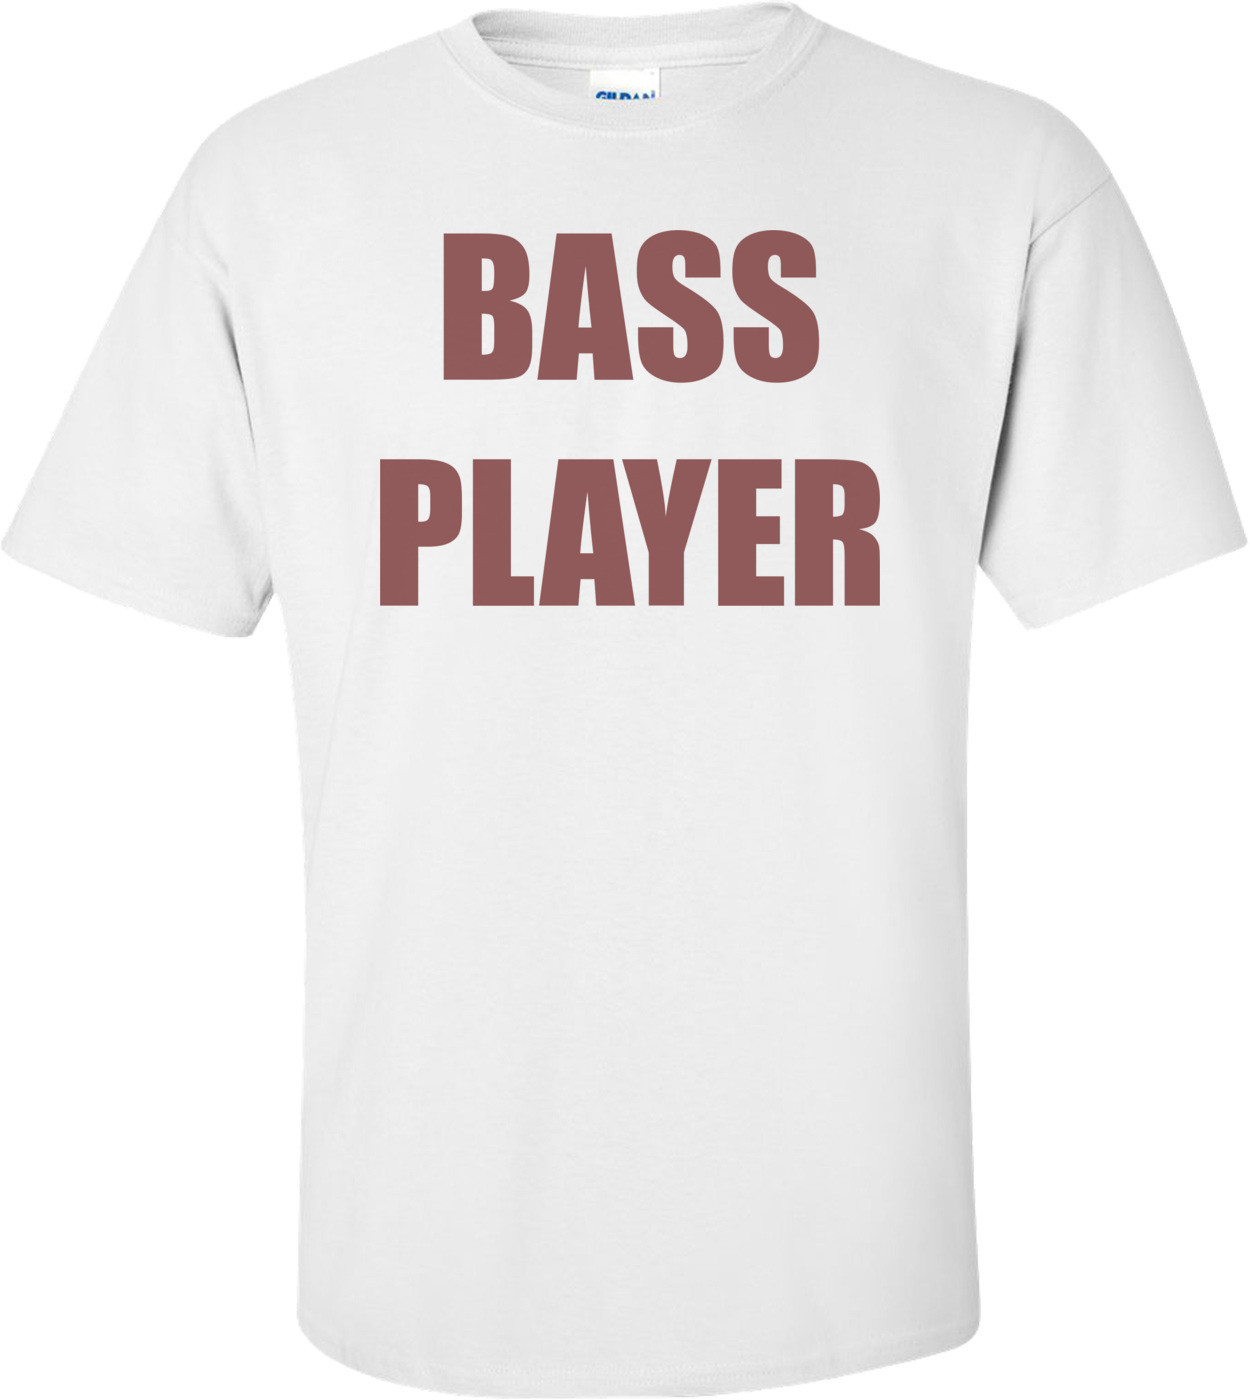 BASS PLAYER Shirt